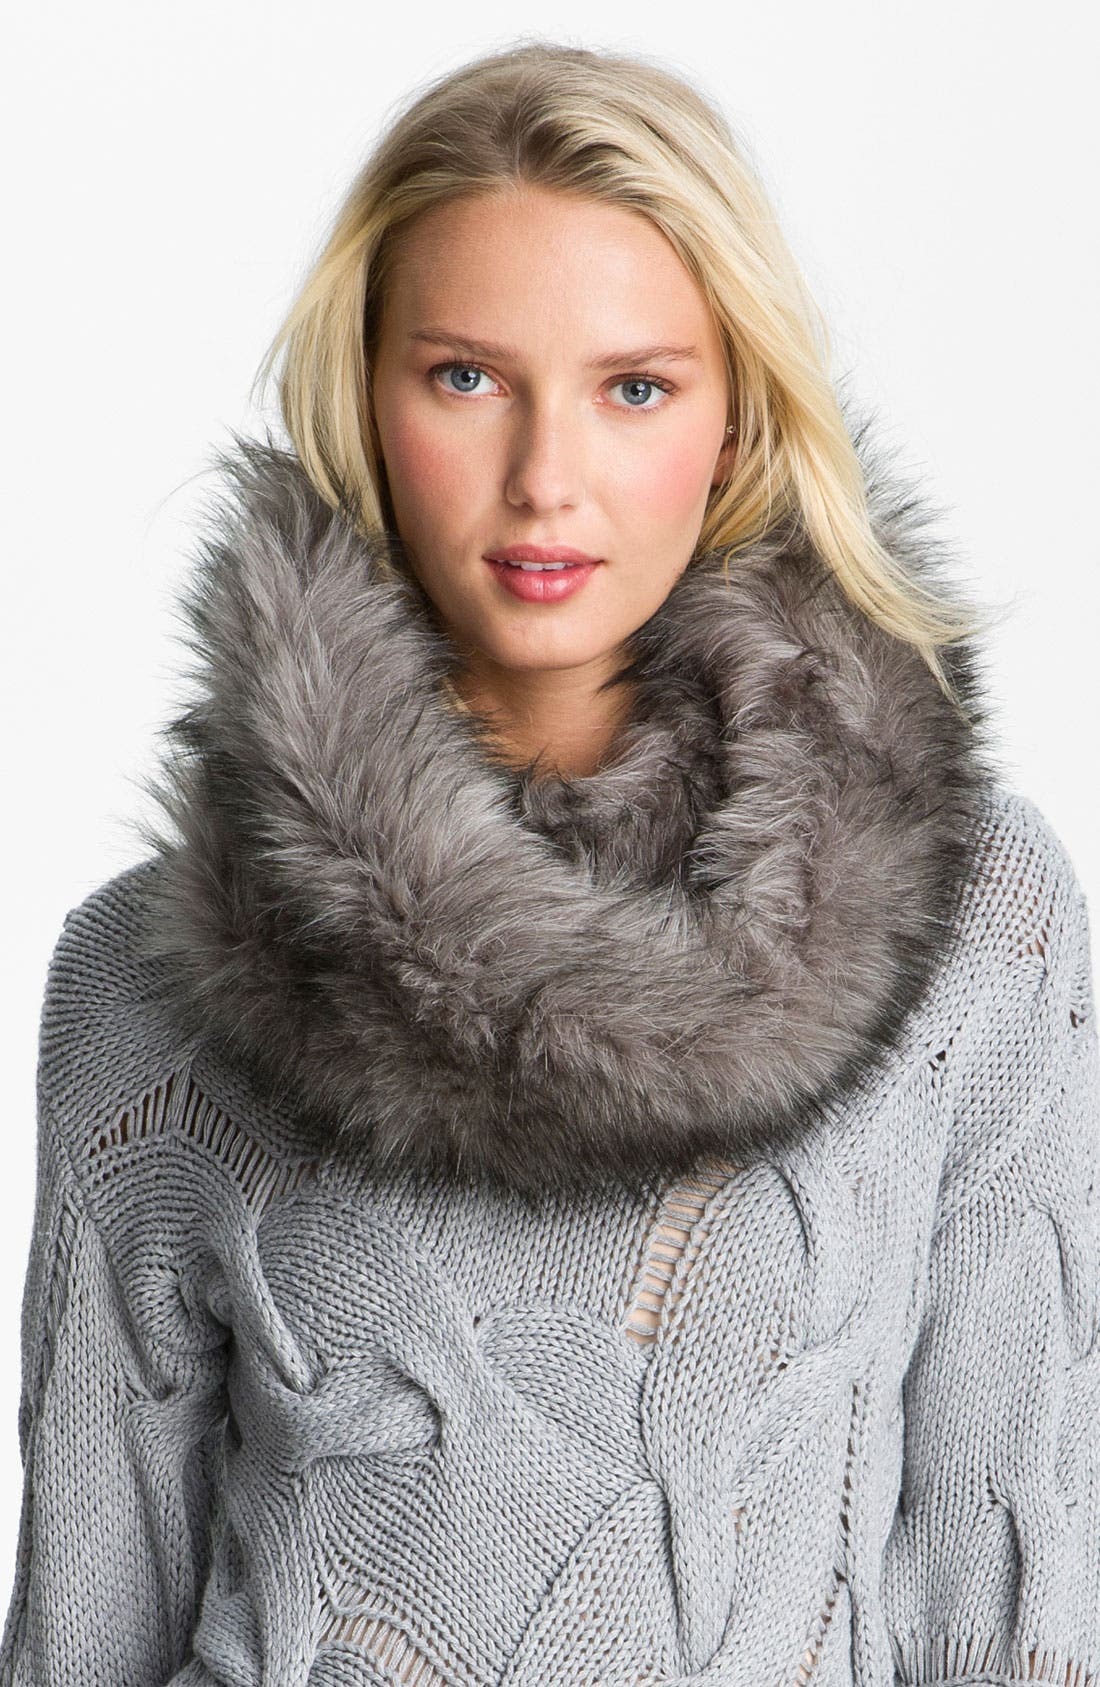 MICHAEL MICHAEL KORS Faux Fur Neck Warmer, Main, color, 020